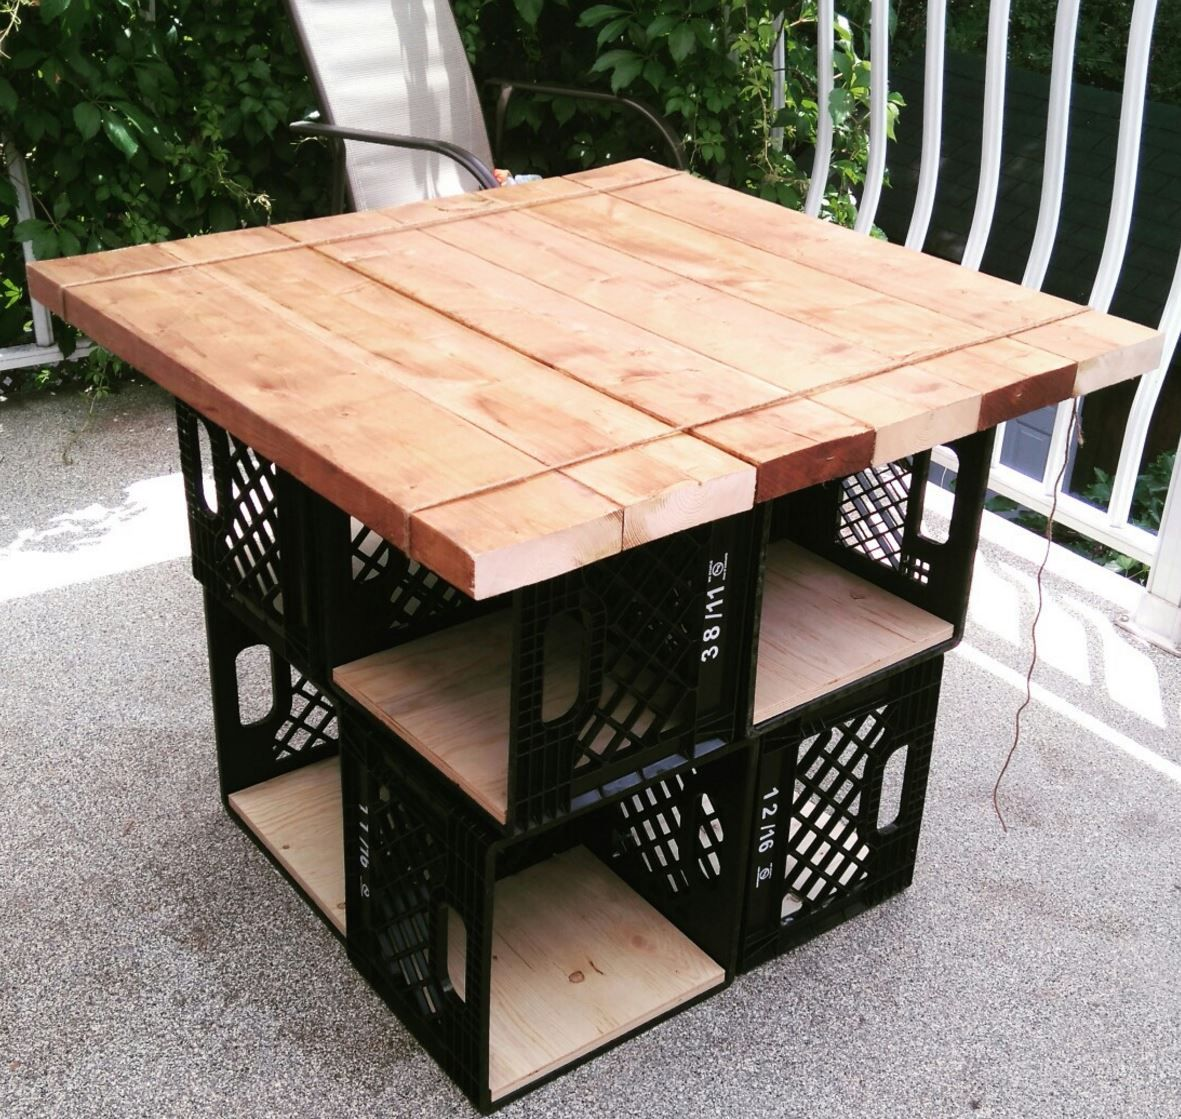 Cratetable Milk Crate Furniture Crate Furniture Milk Crates Diy